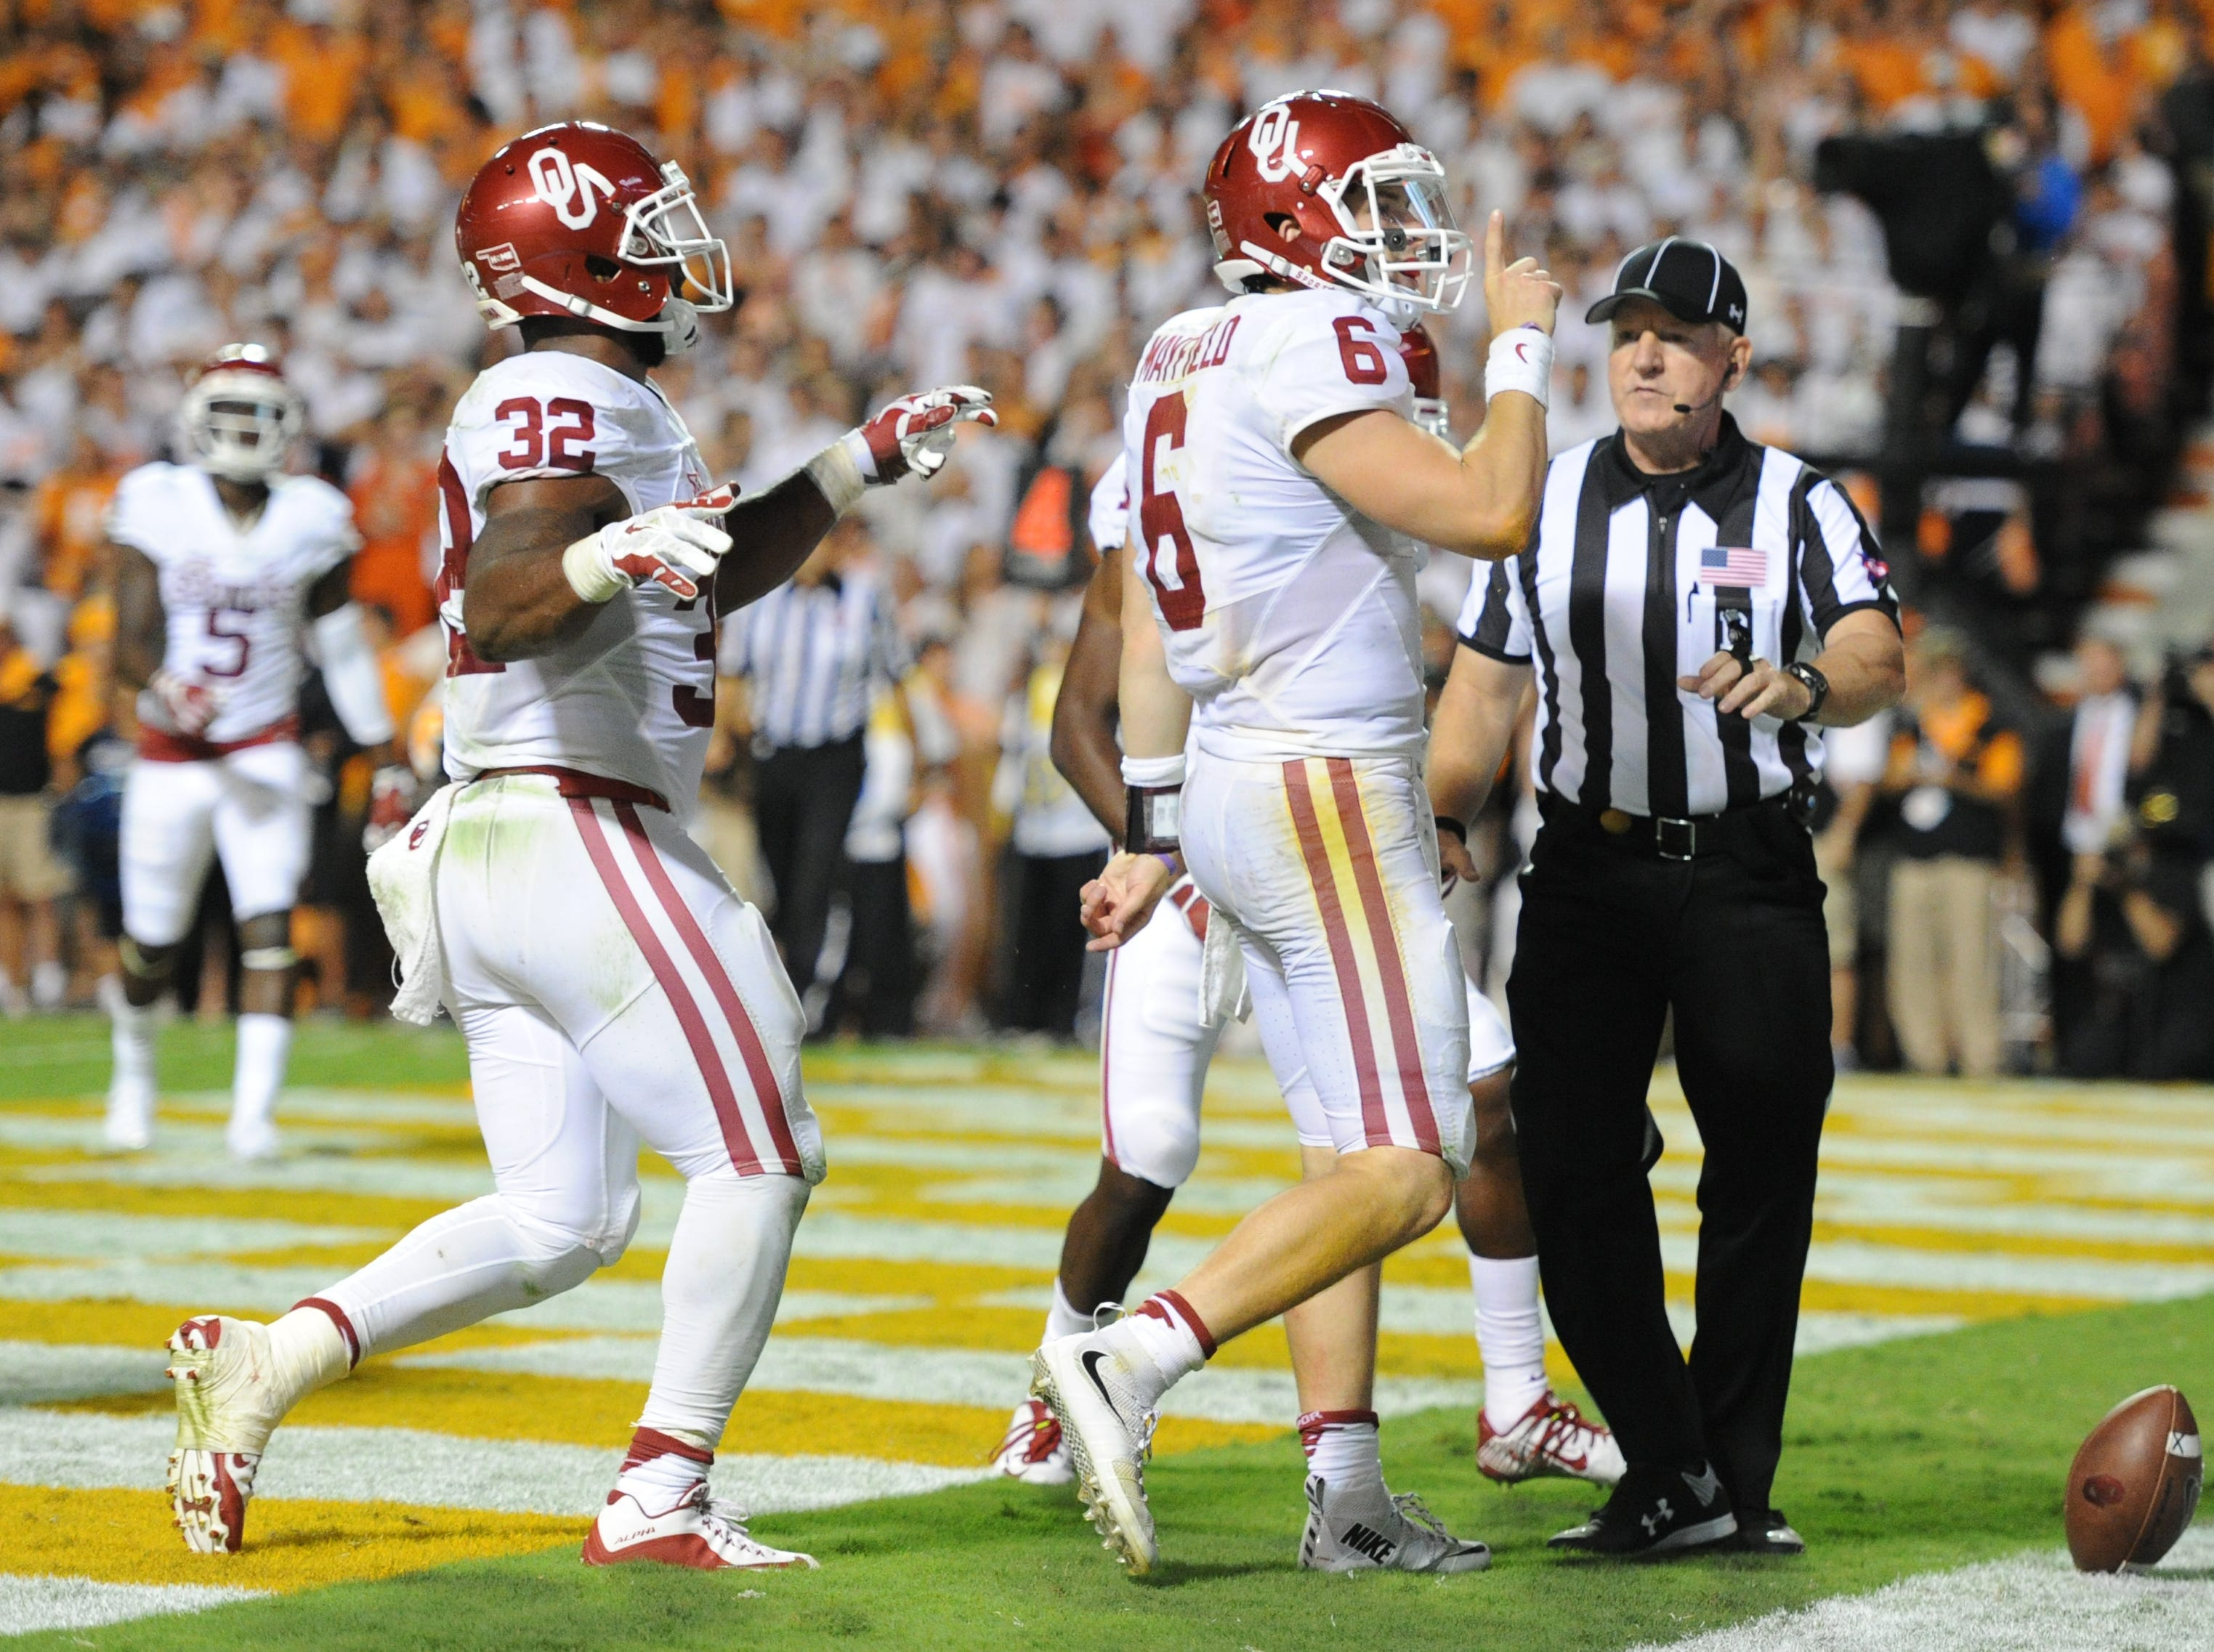 Oklahoma quarterback Baker Mayfield (6) shushes the crowd after scoring a touchdown in the first overtime period against Tennessee at Neyland Stadium on Saturday, Sept. 12, 2015 in Knoxville, Tenn. Oklahoma won 31-24.